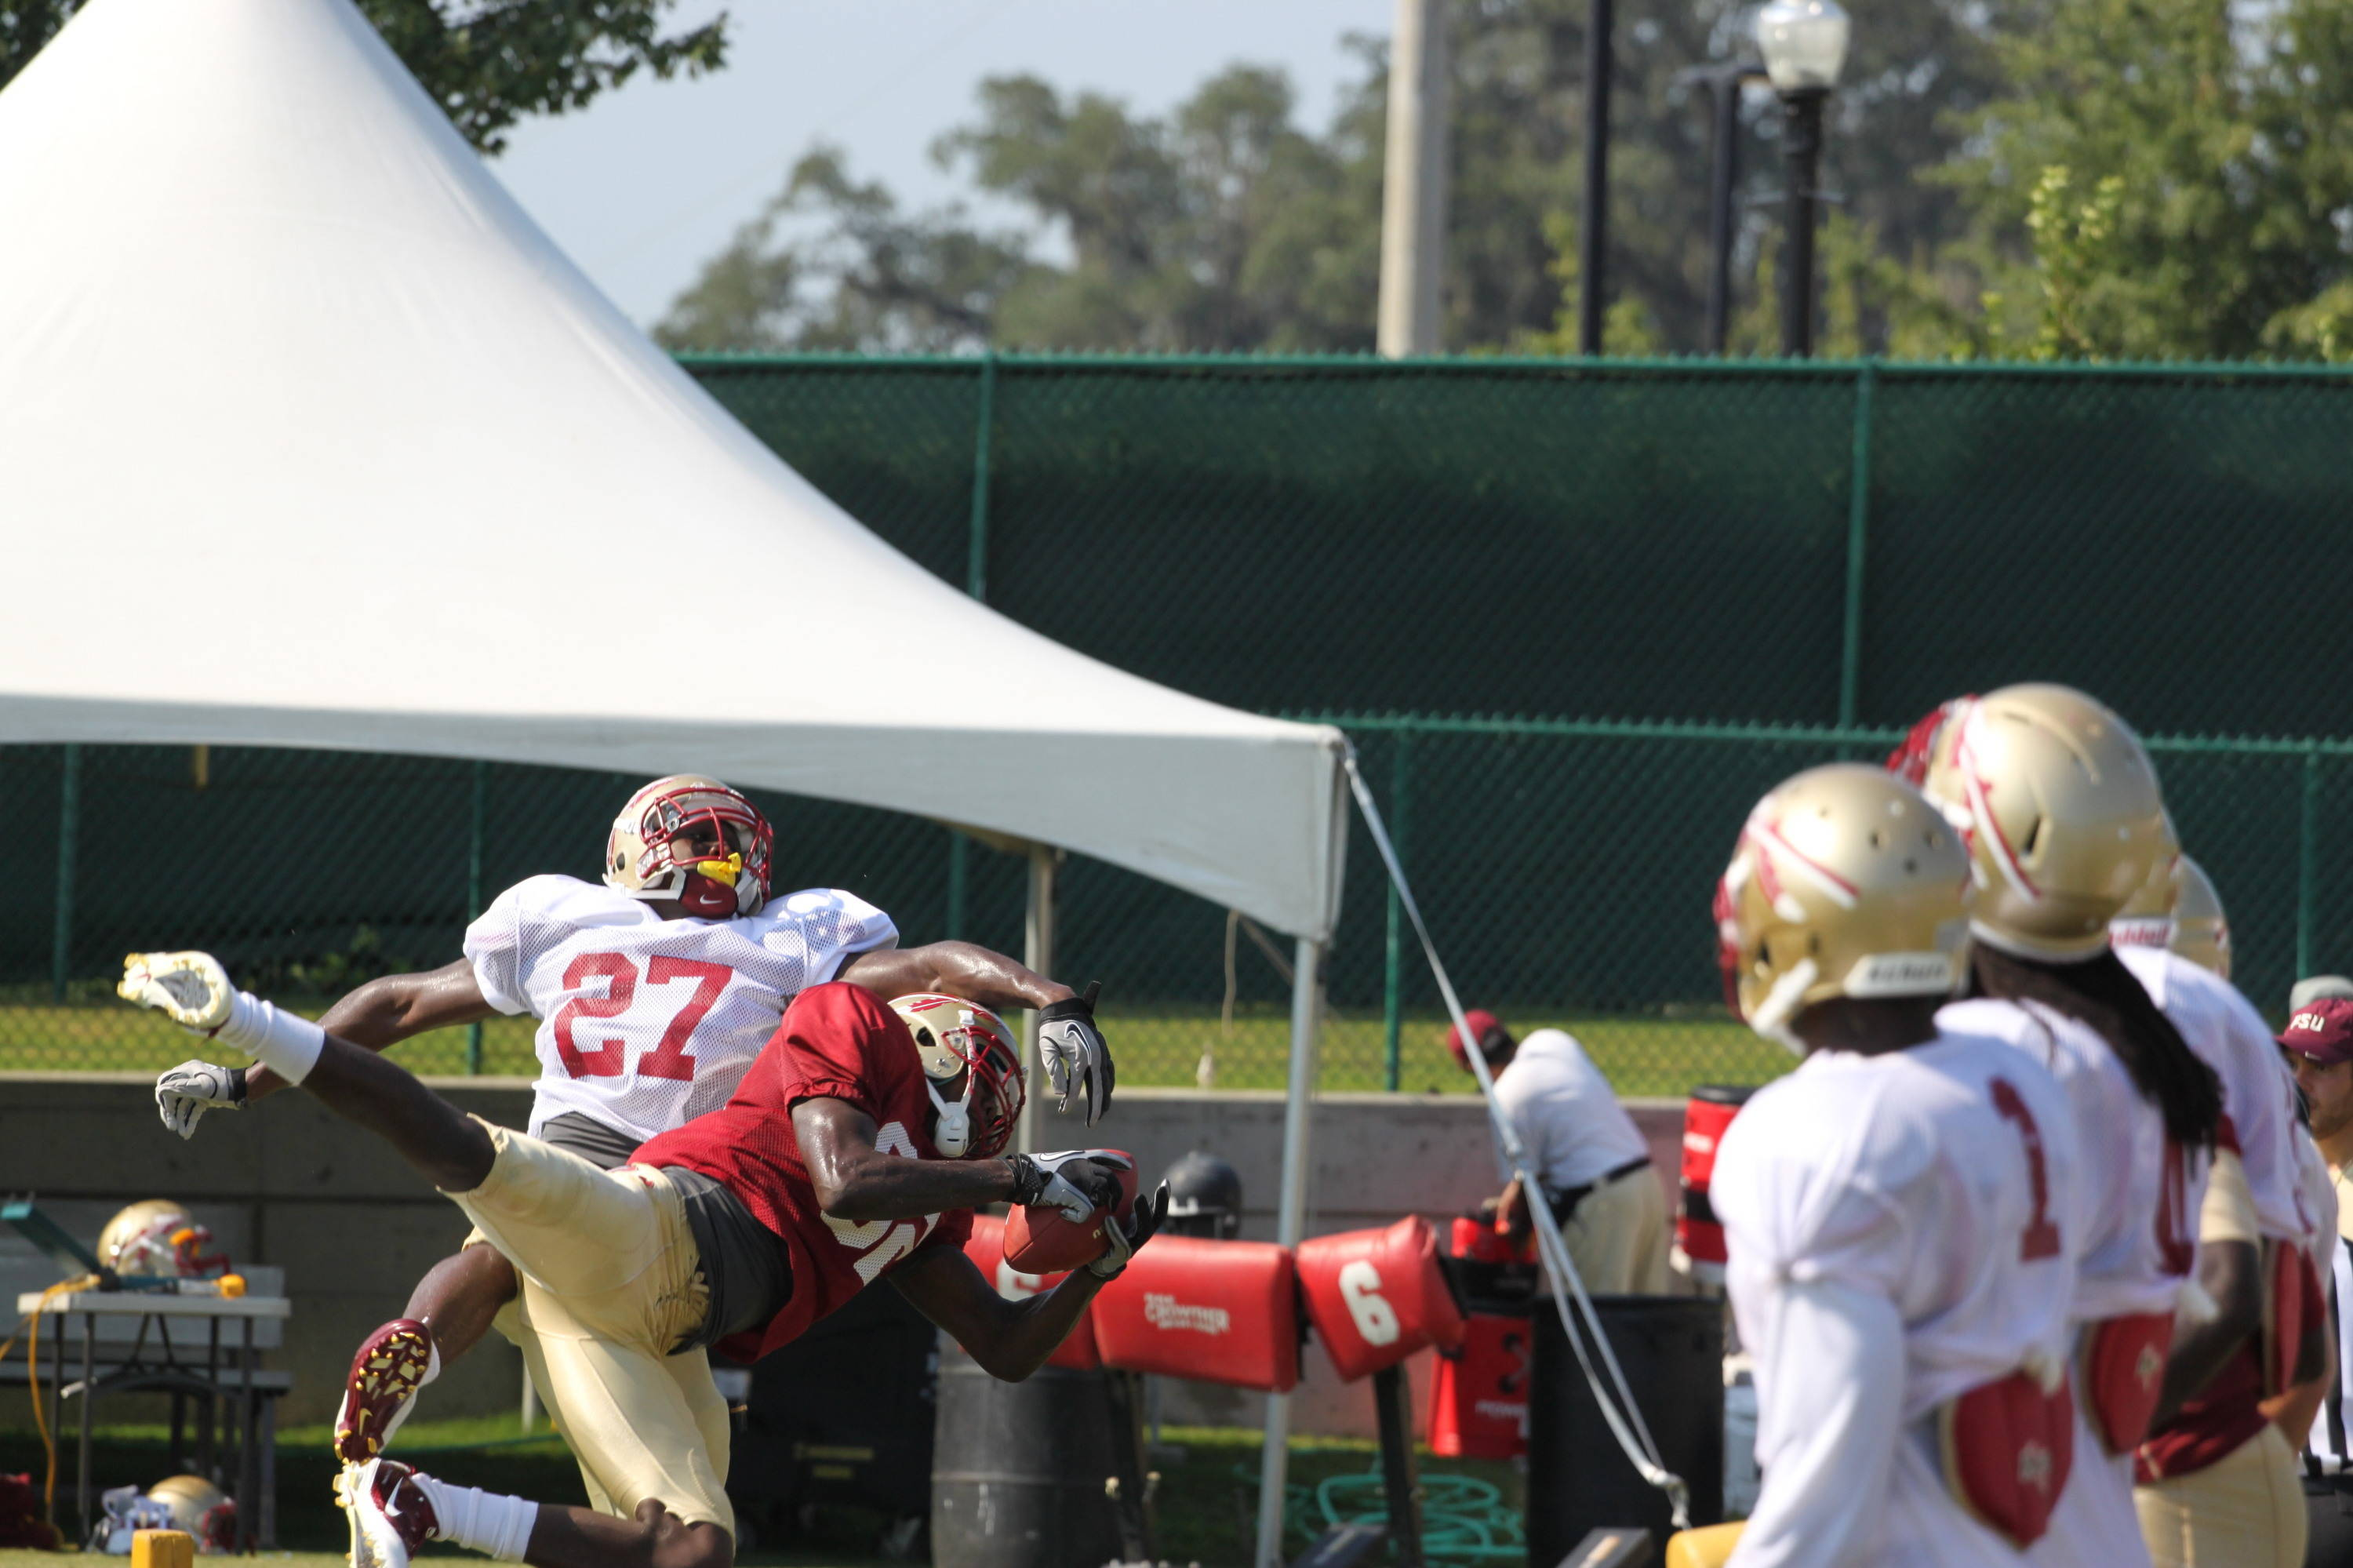 Scooter Haggins hauls in a touchdown pass in front of cornerback Xavier Rhodes as the 'Noles.